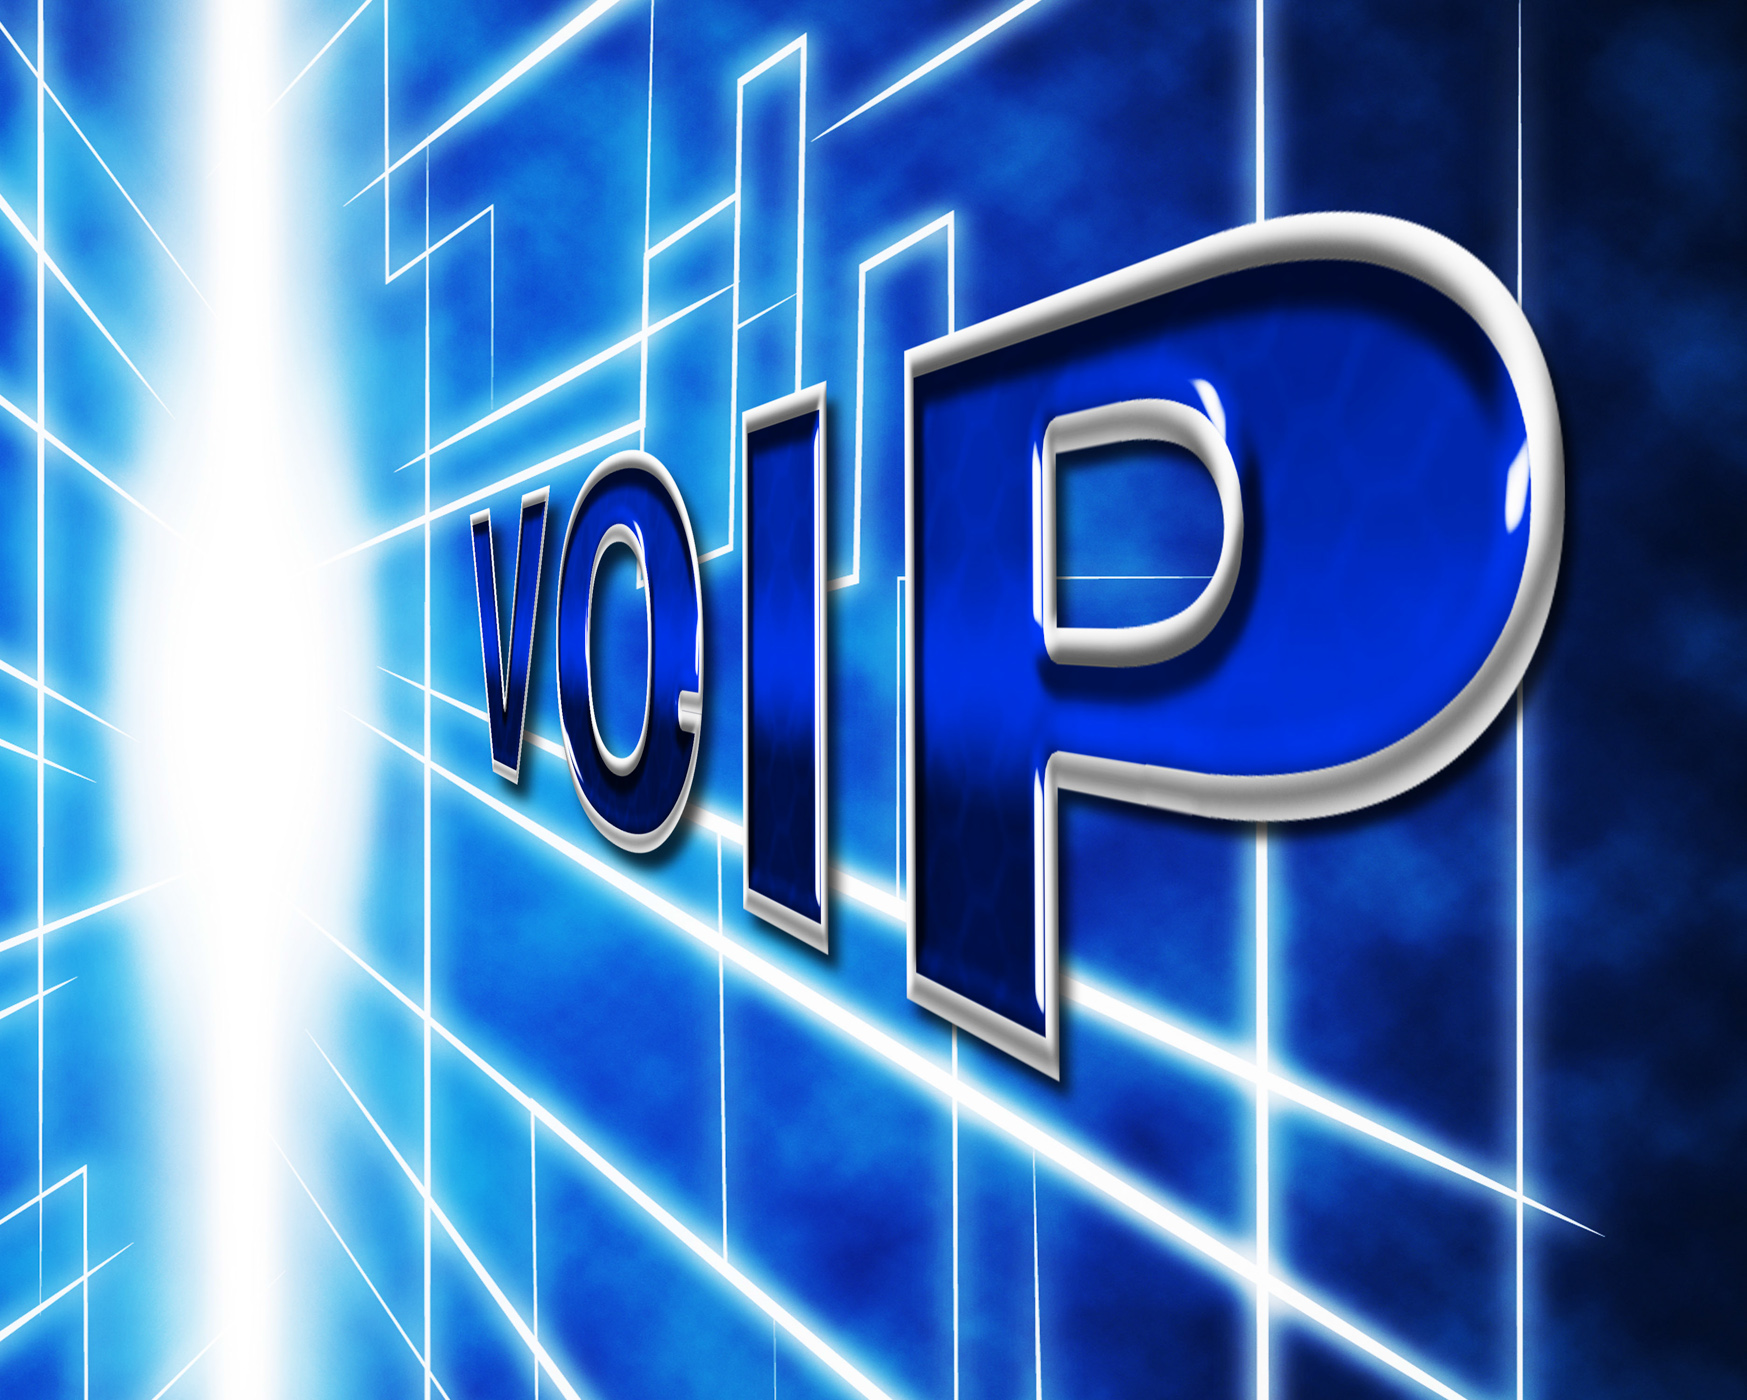 Voip telephony indicates voice over broadband and protocol photo